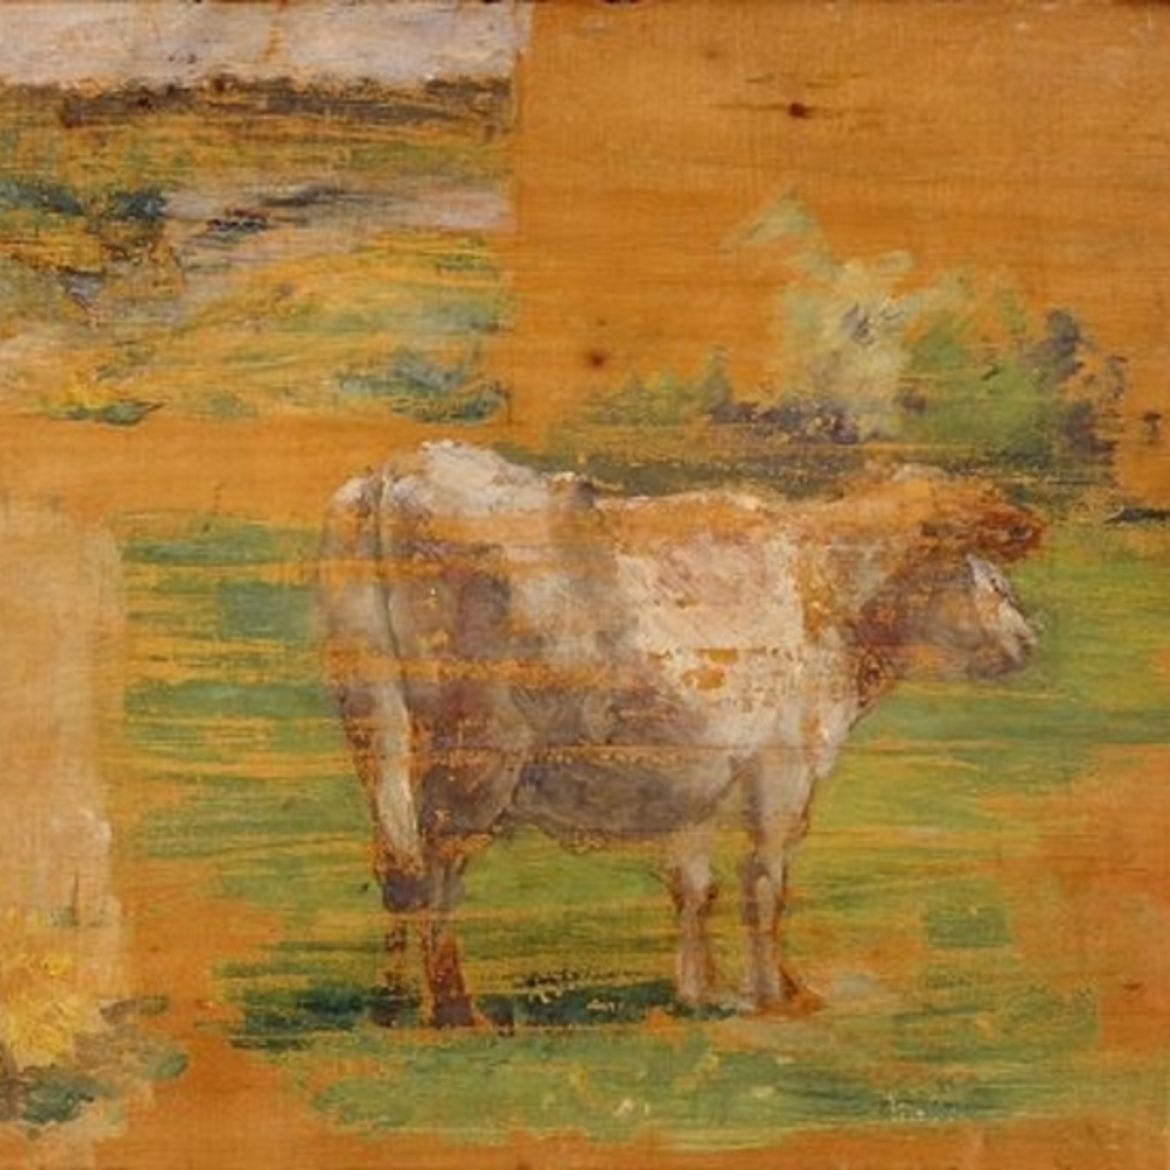 Cover Photo: Study of a Cow, by Kuroda Seiki, Kagoshima City Museum of Art, Kagoshima, Japan. From Wikimedia Commons.